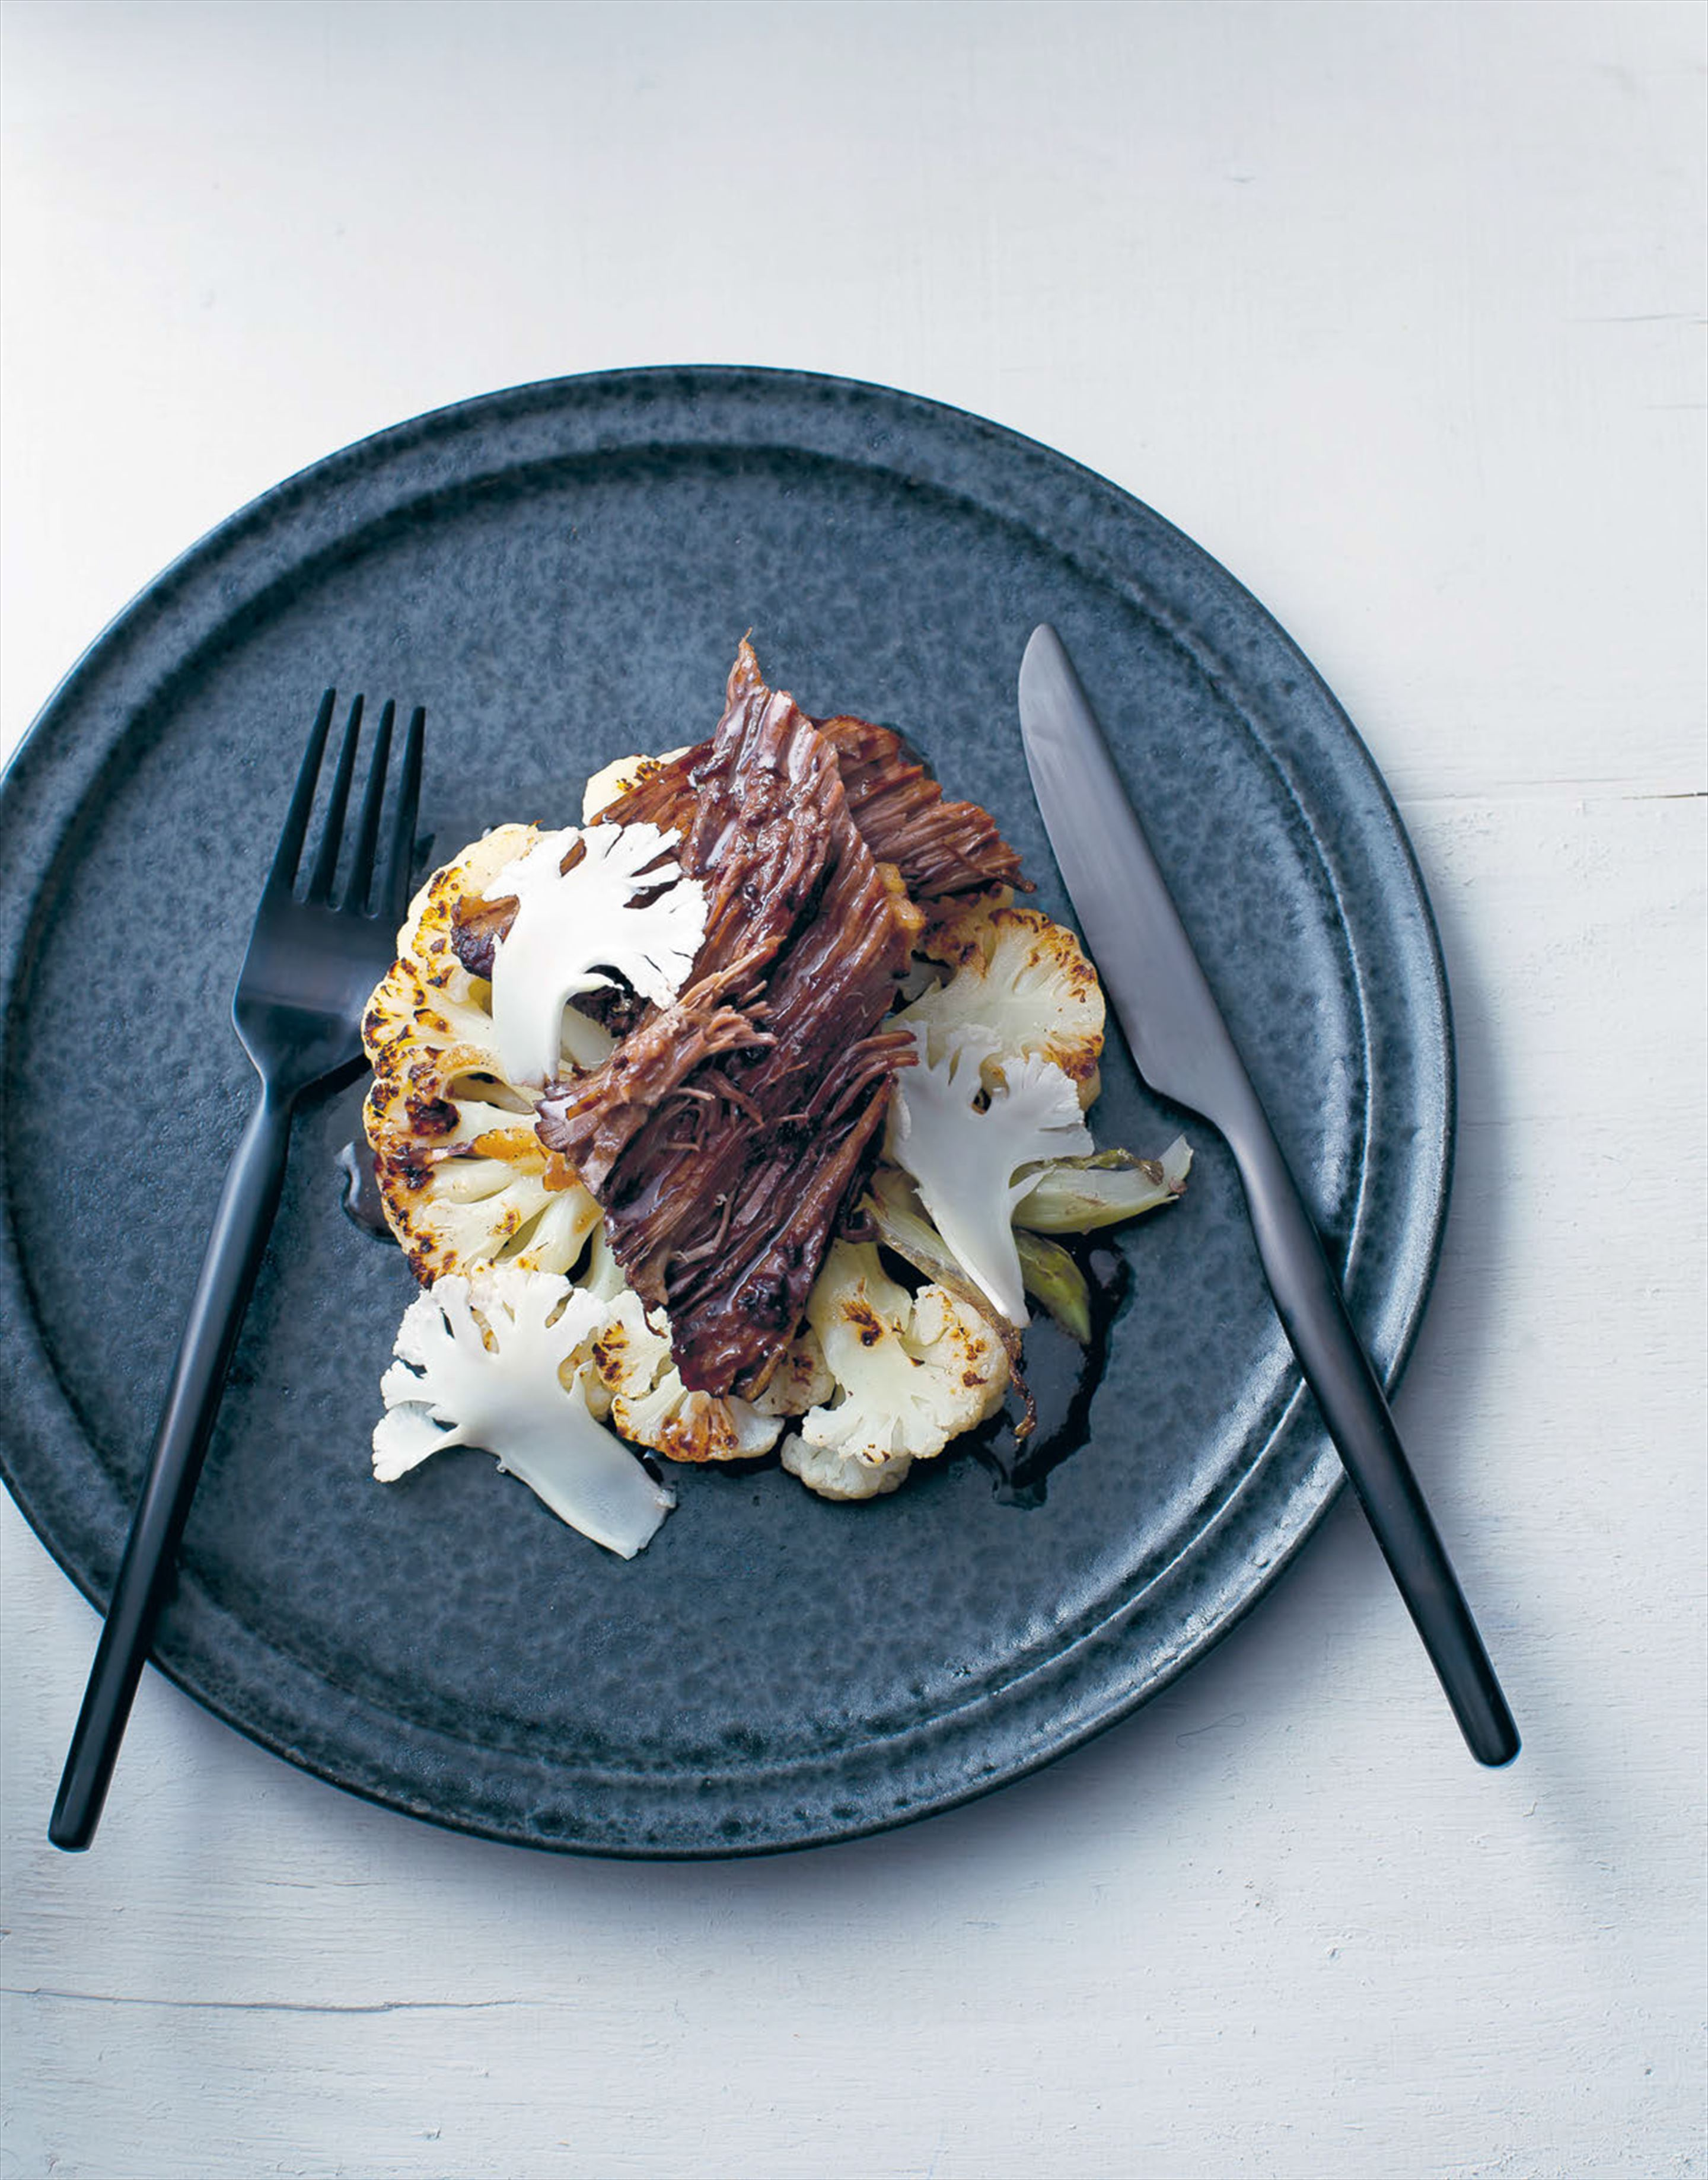 Beef brisket, spiced wine & cauliflower steaks